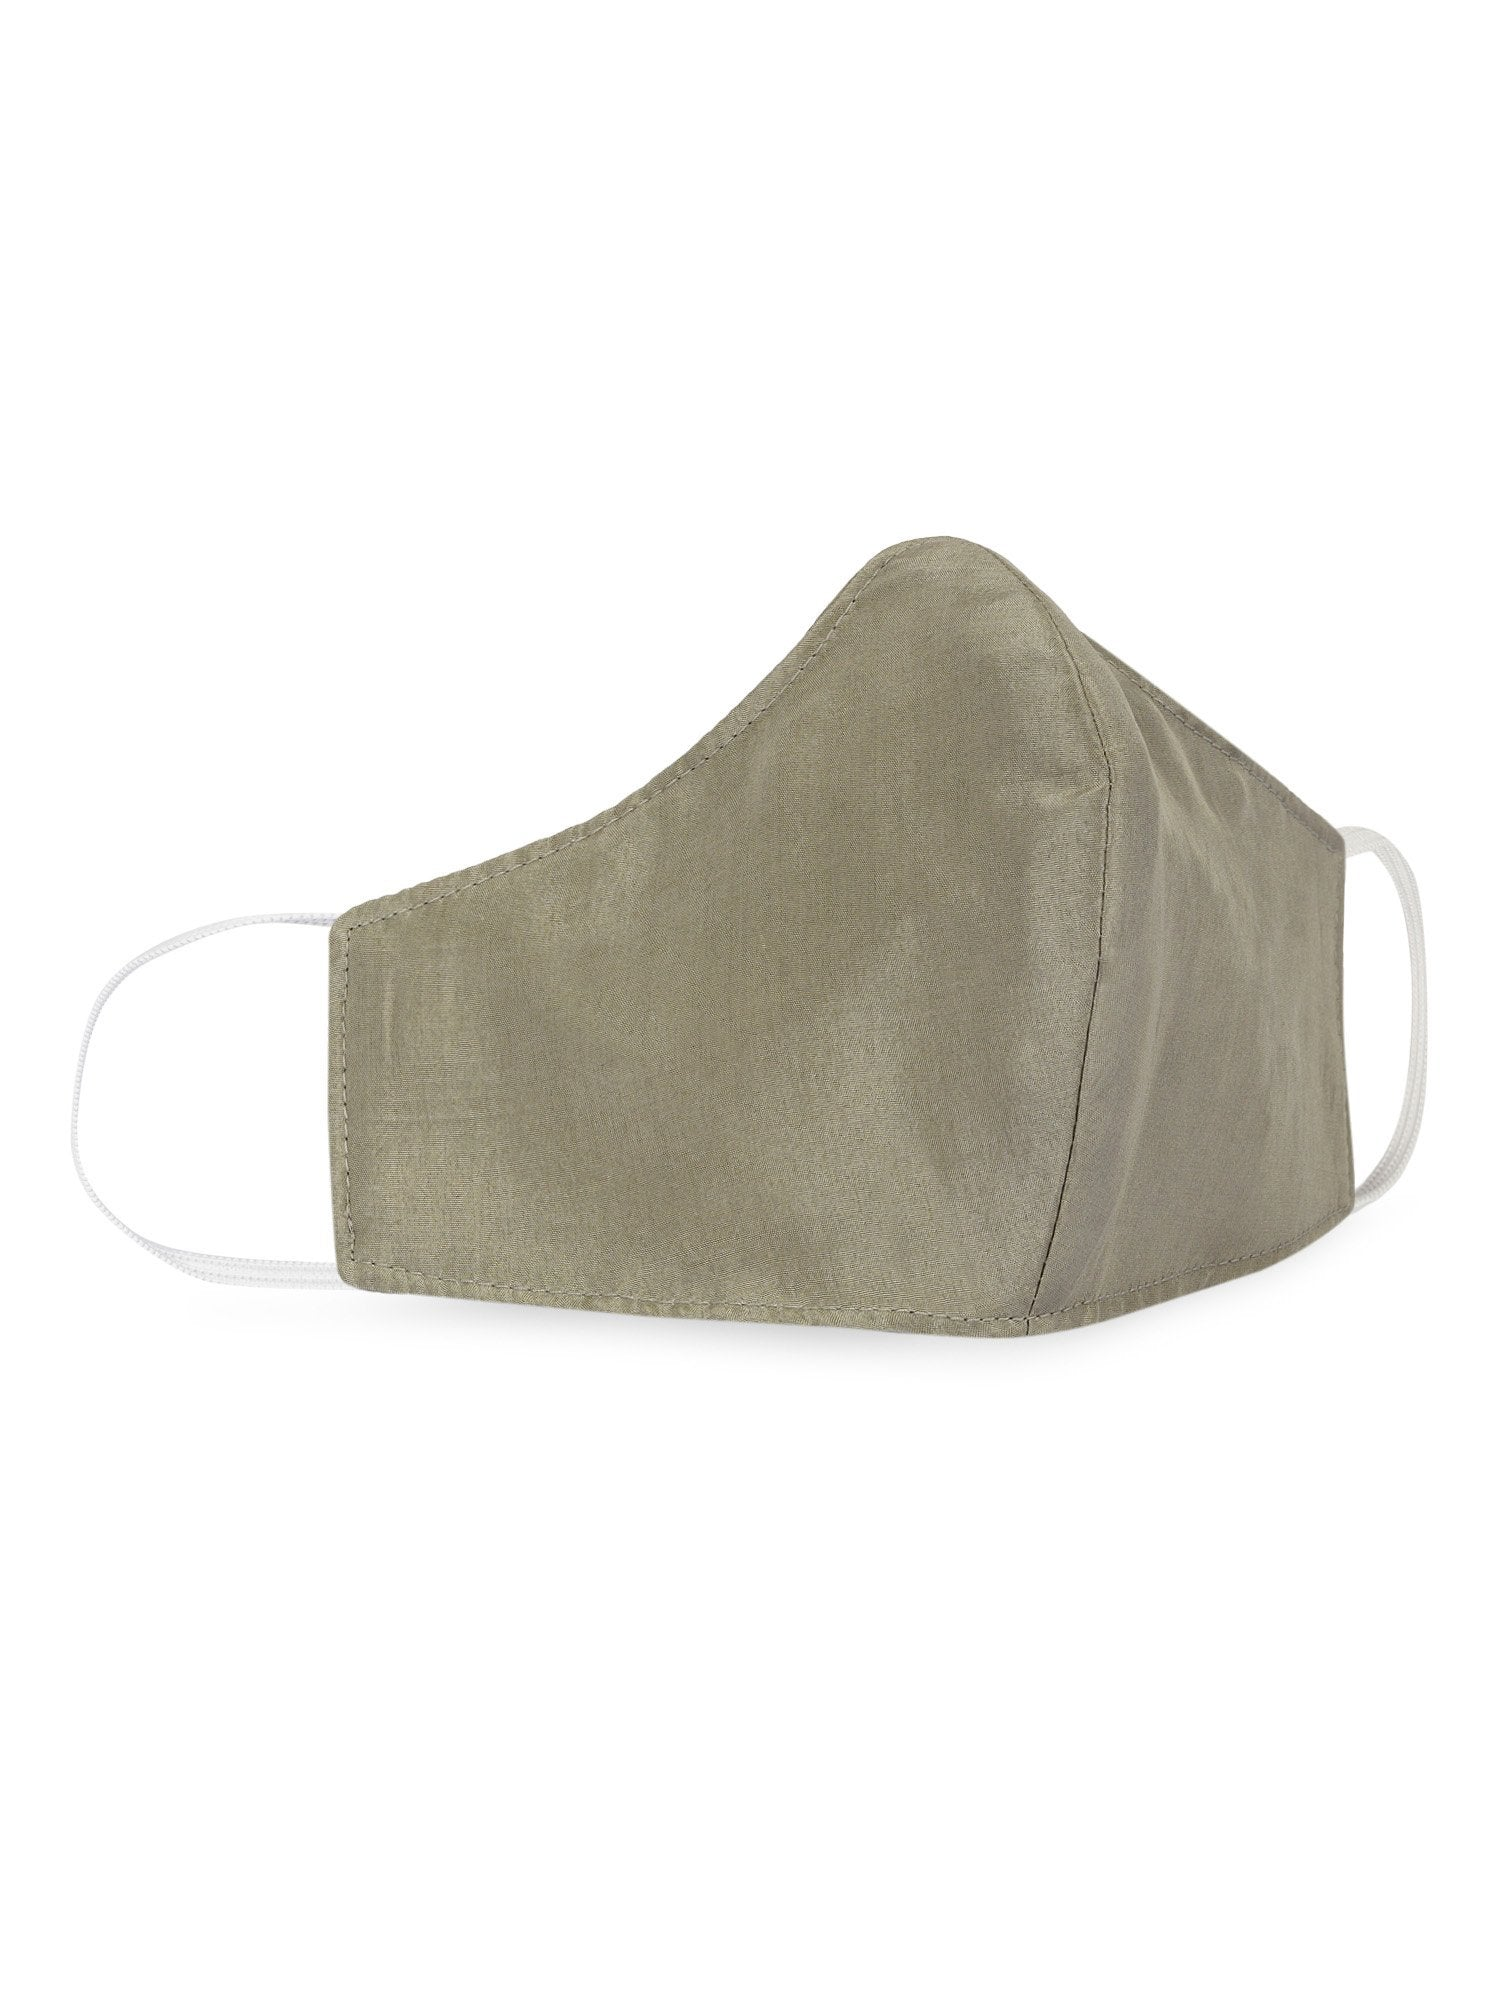 Reusable Silk Face Mask- Olive - the naked laundry.